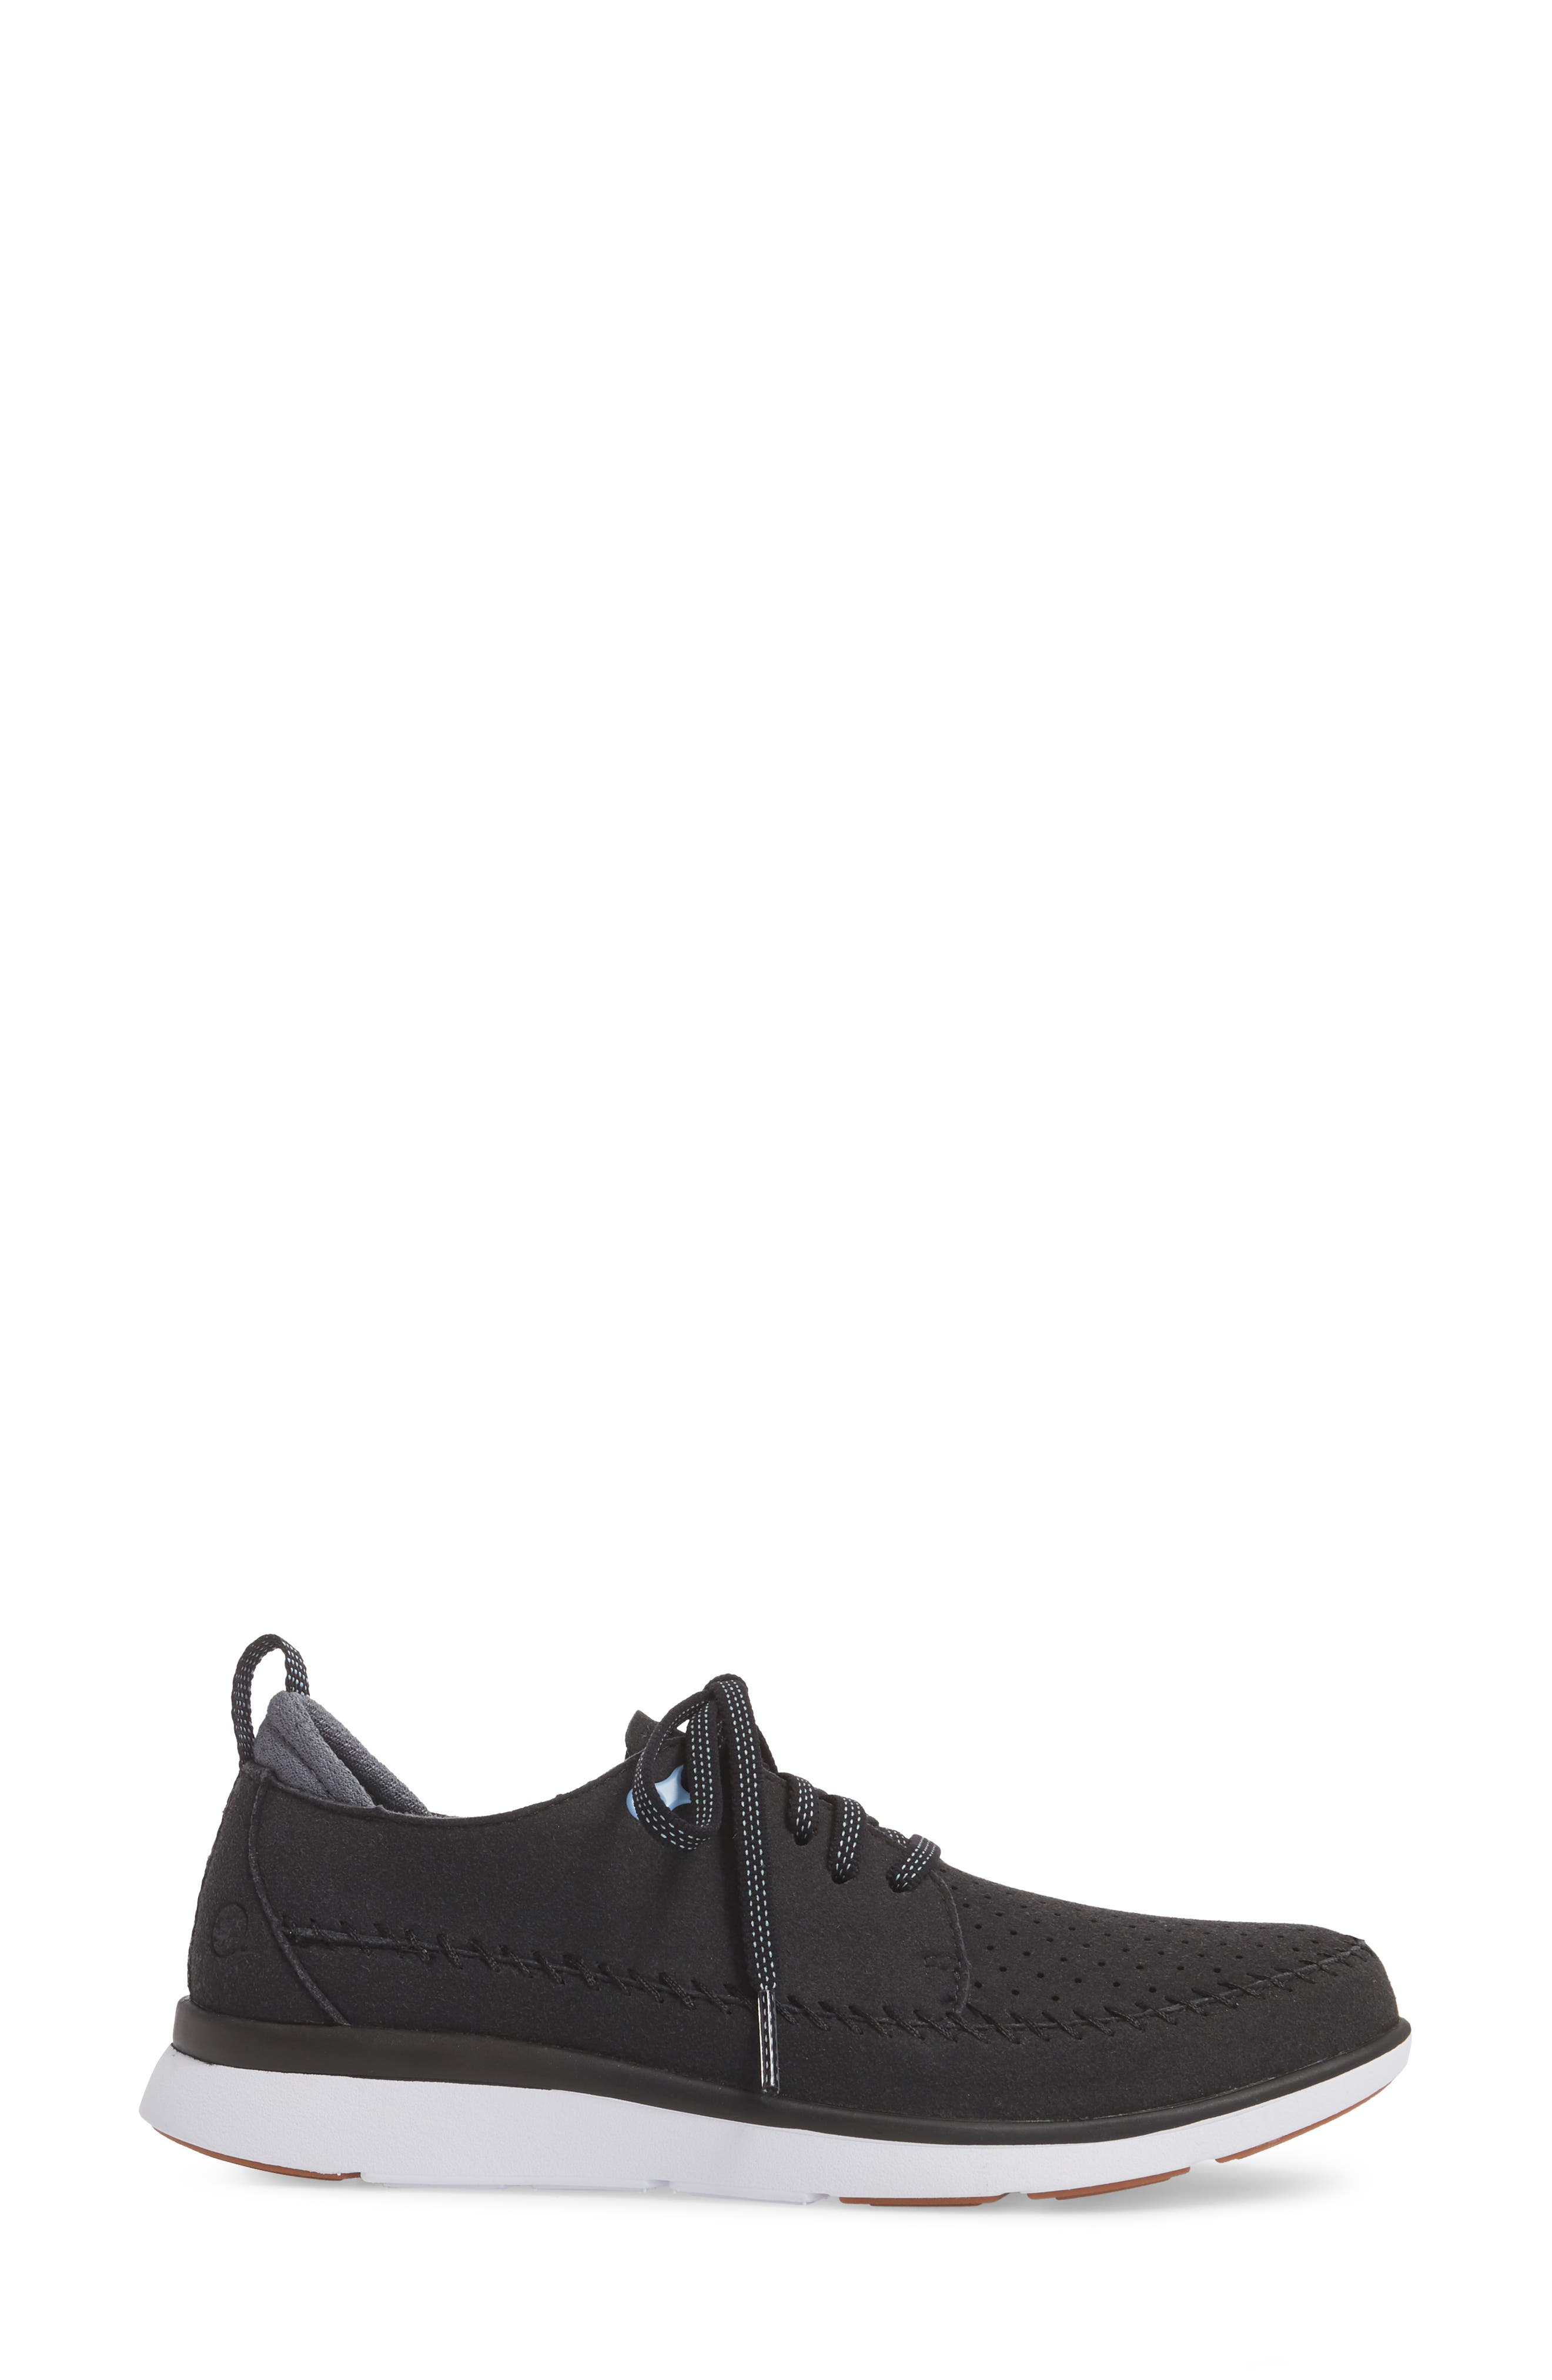 Addy Sneaker,                             Alternate thumbnail 3, color,                             BLACK FABRIC